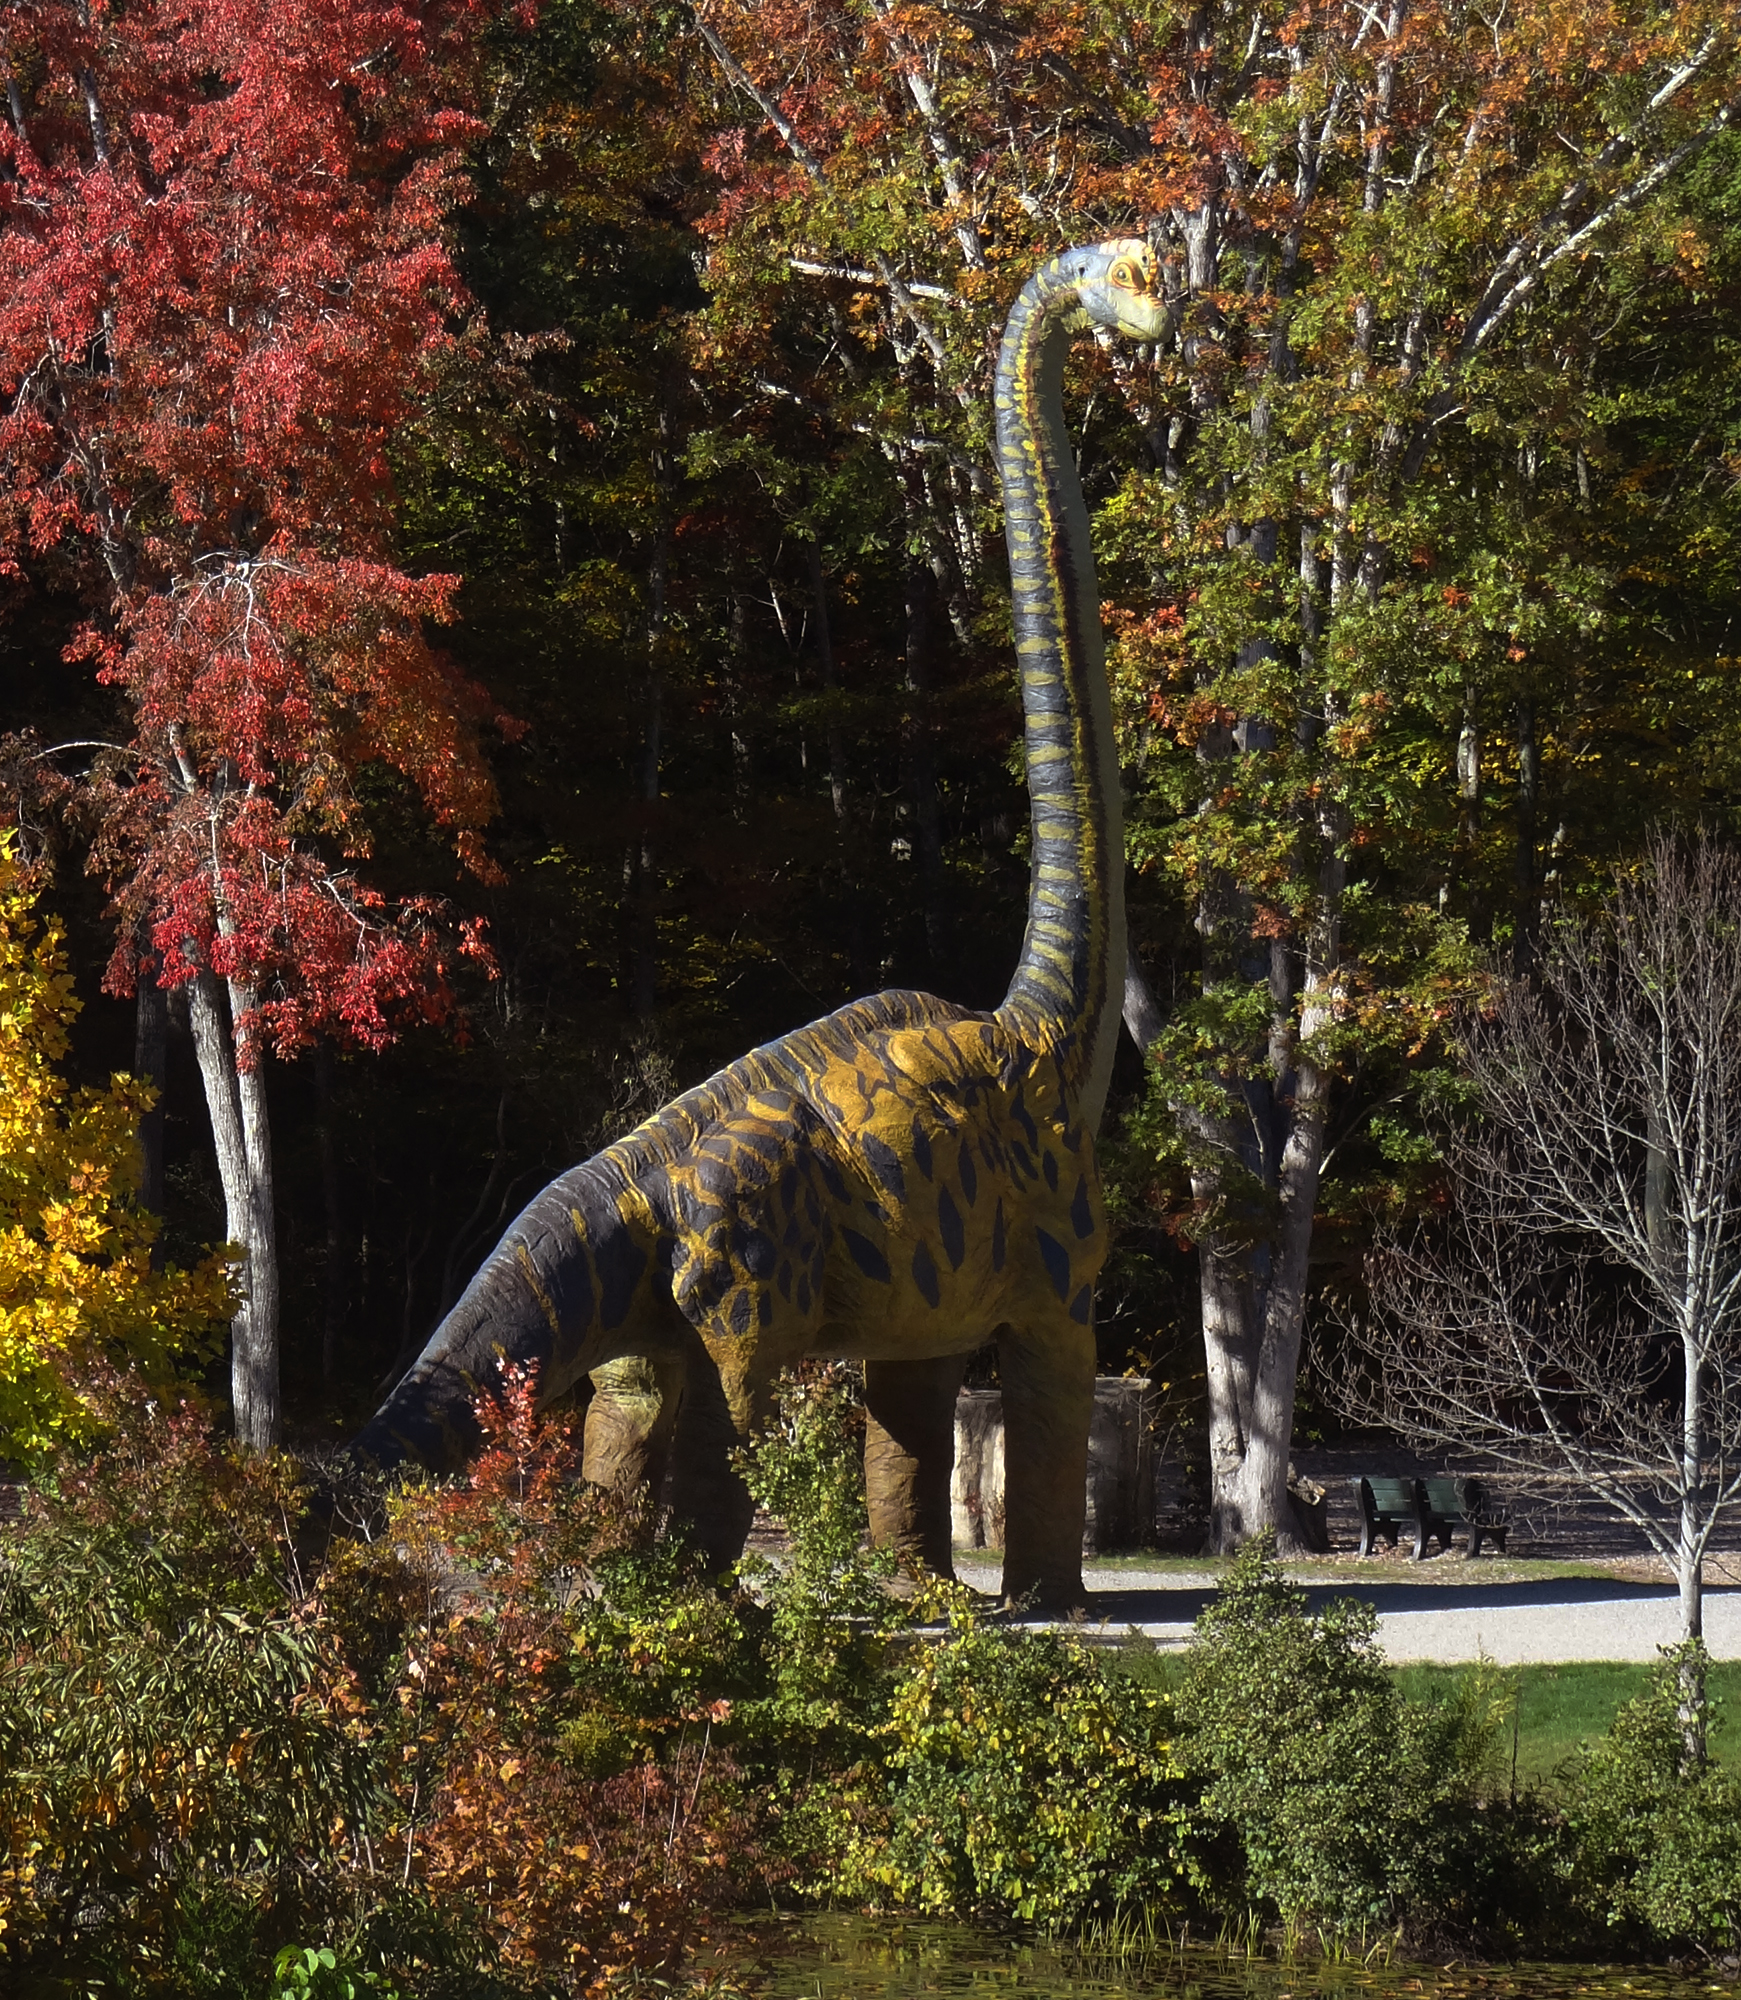 Brachiosaurus in the Fall